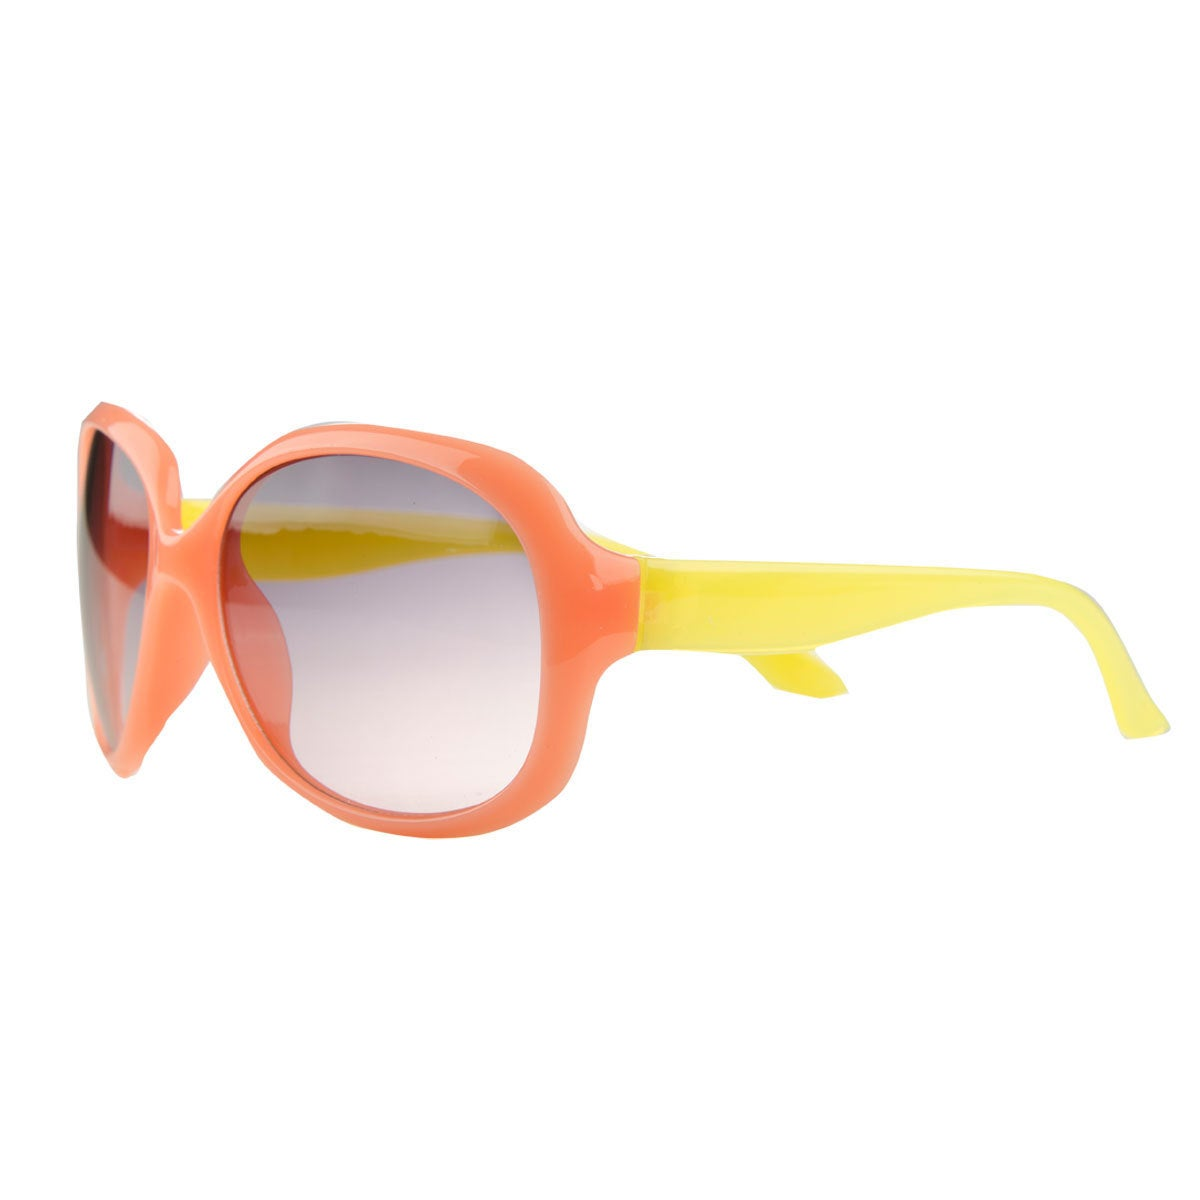 c5901a323d Shop Crummy Bunny Toddler Girls  Fashion UV400 Sunglasses - Free Shipping  On Orders Over  45 - Overstock.com - 10241227